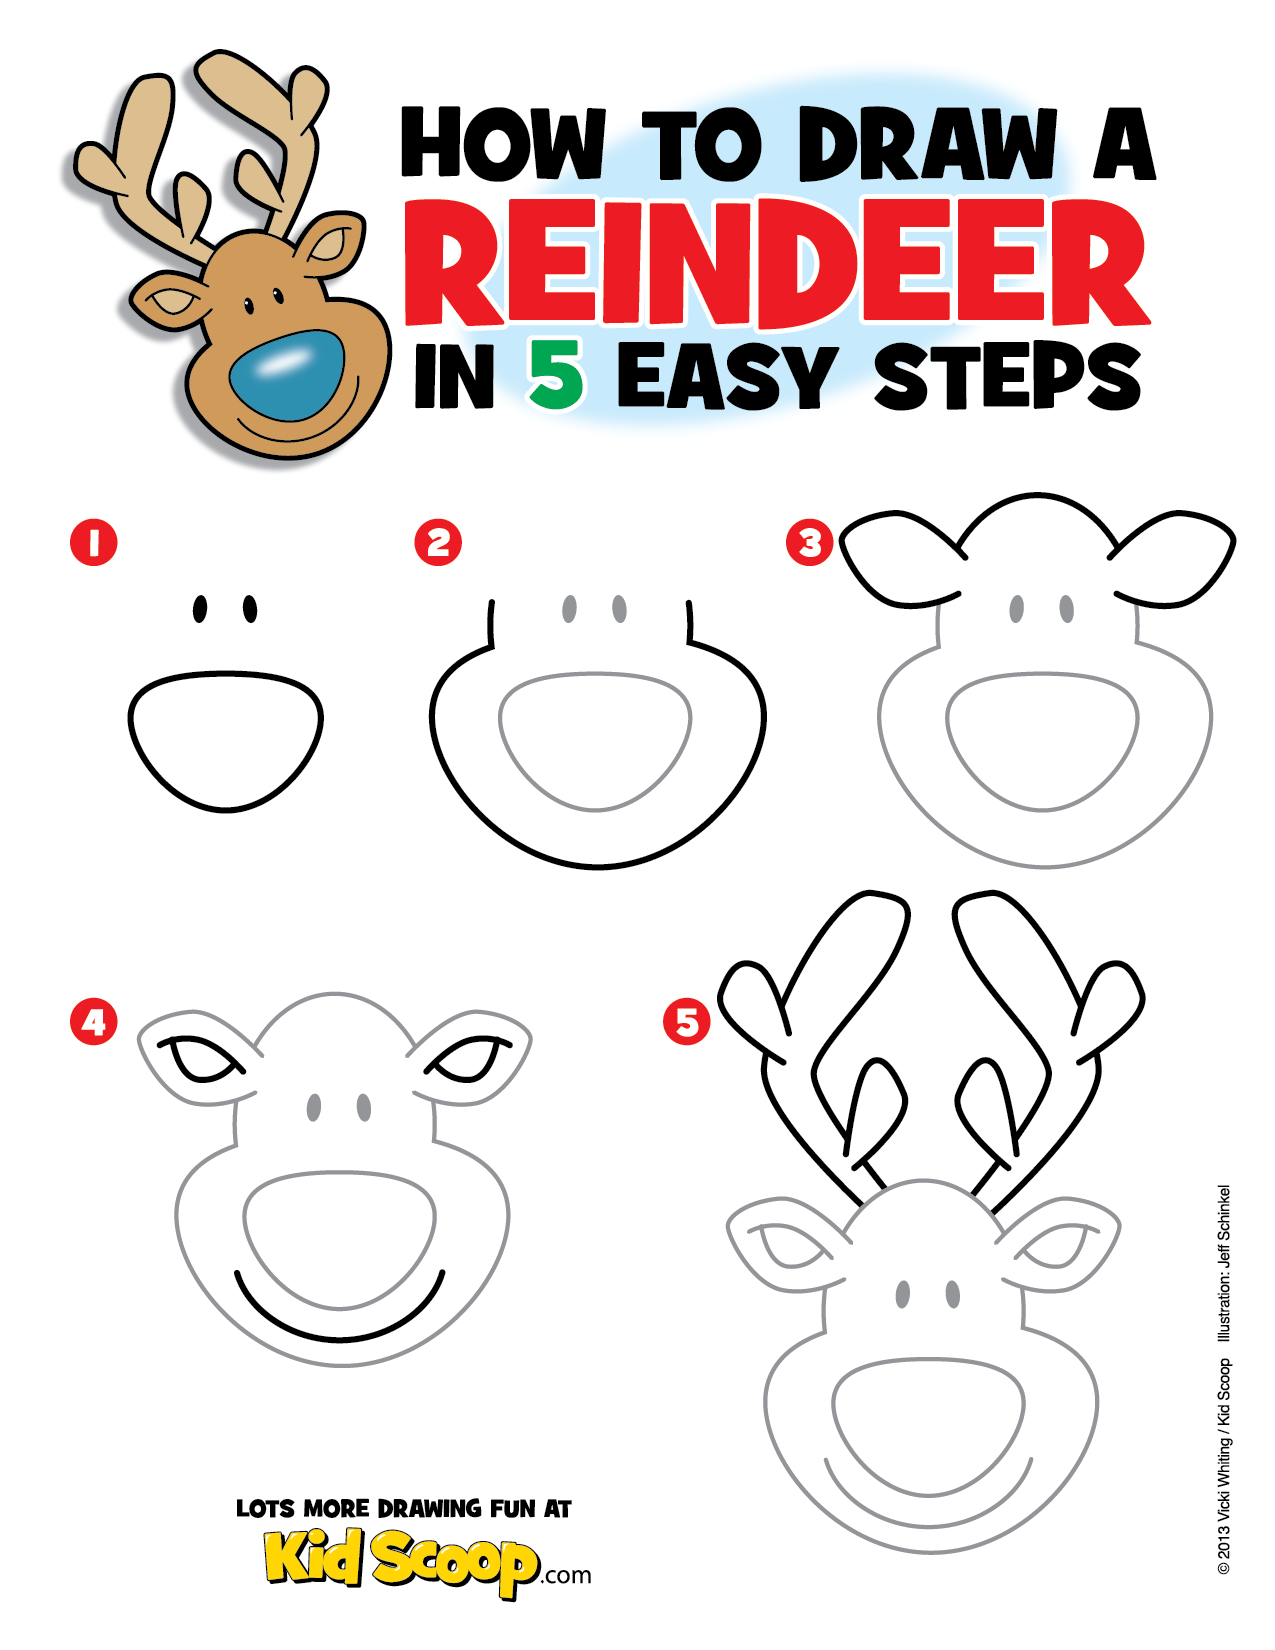 Use This Step By Step Guide With Your Child Or Students And Learn How To Draw A Reindeer Www Kidscoop Com Christmas Drawing Christmas Art Christmas Doodles